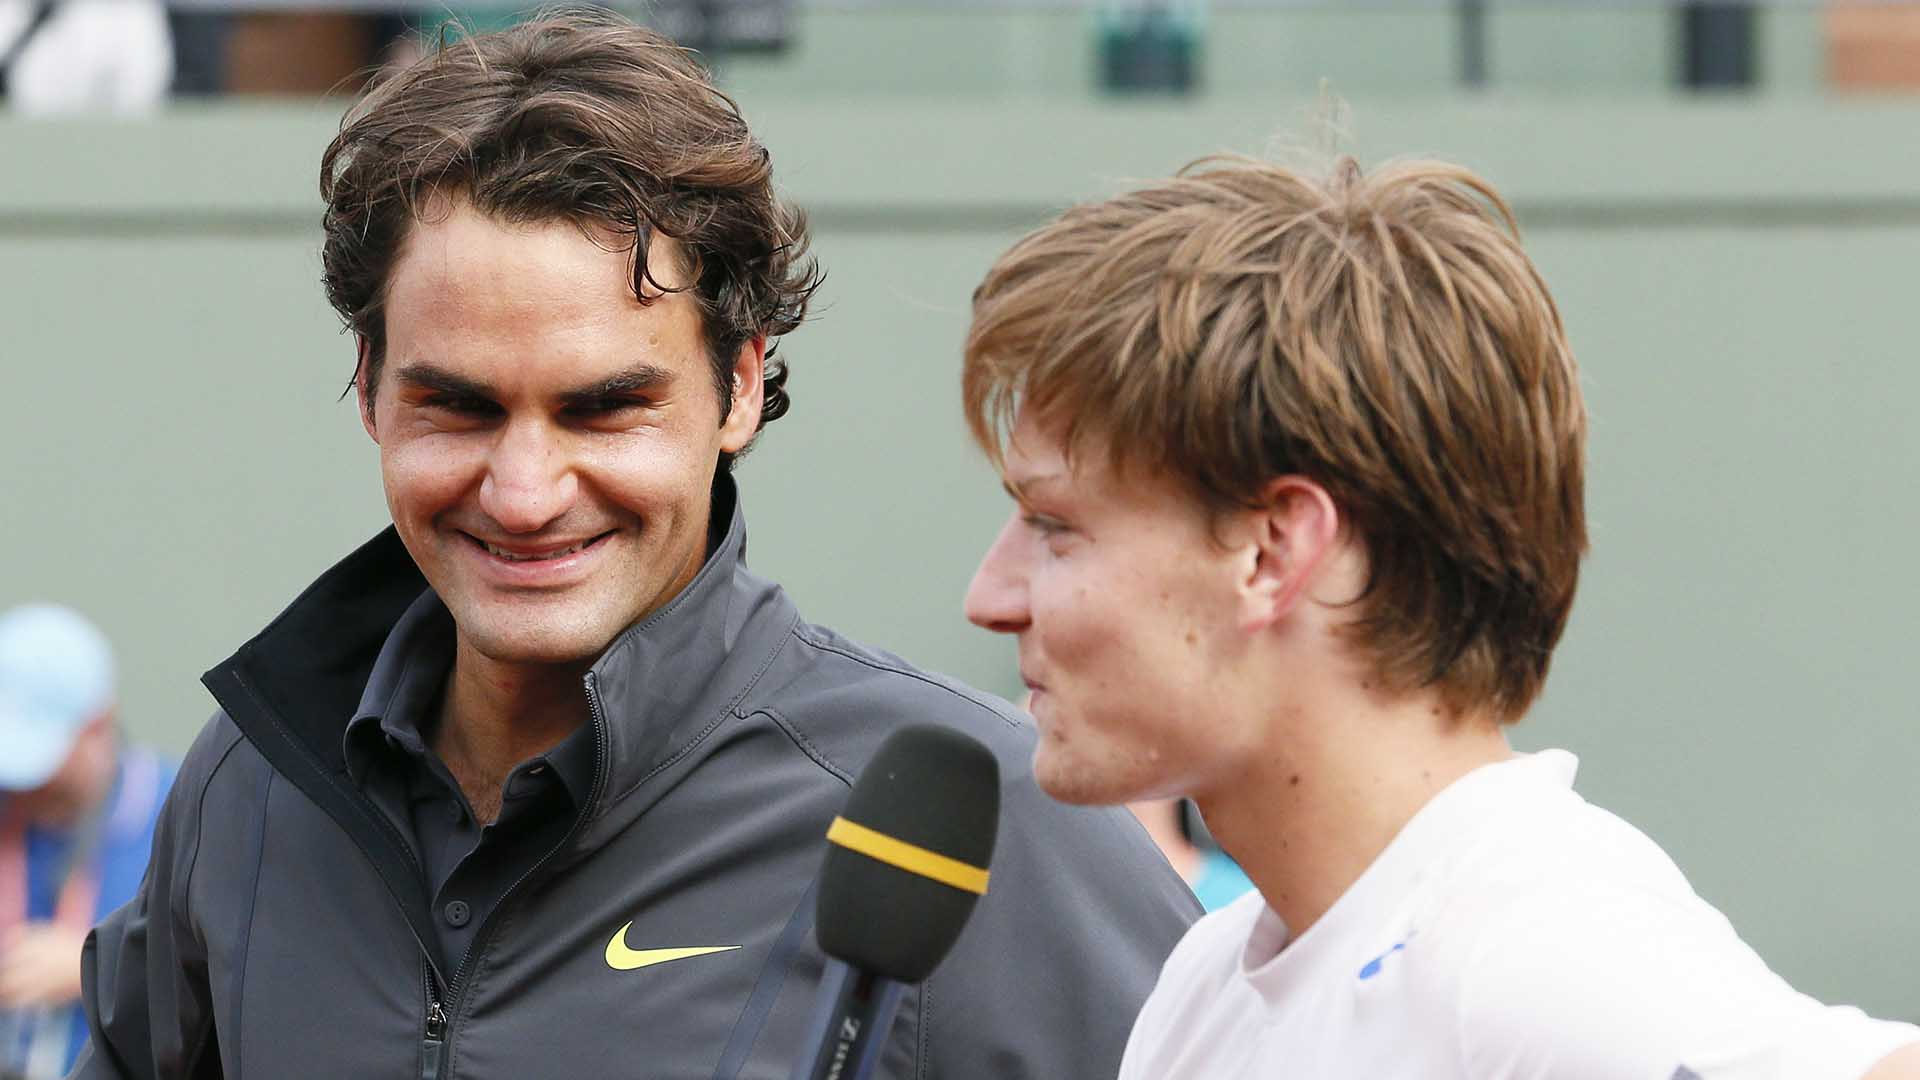 Roger Federer and David Goffin share a joint on-court interview after their 2012 Roland Garros Round of 16 match on Court Suzanne-Lenglen.